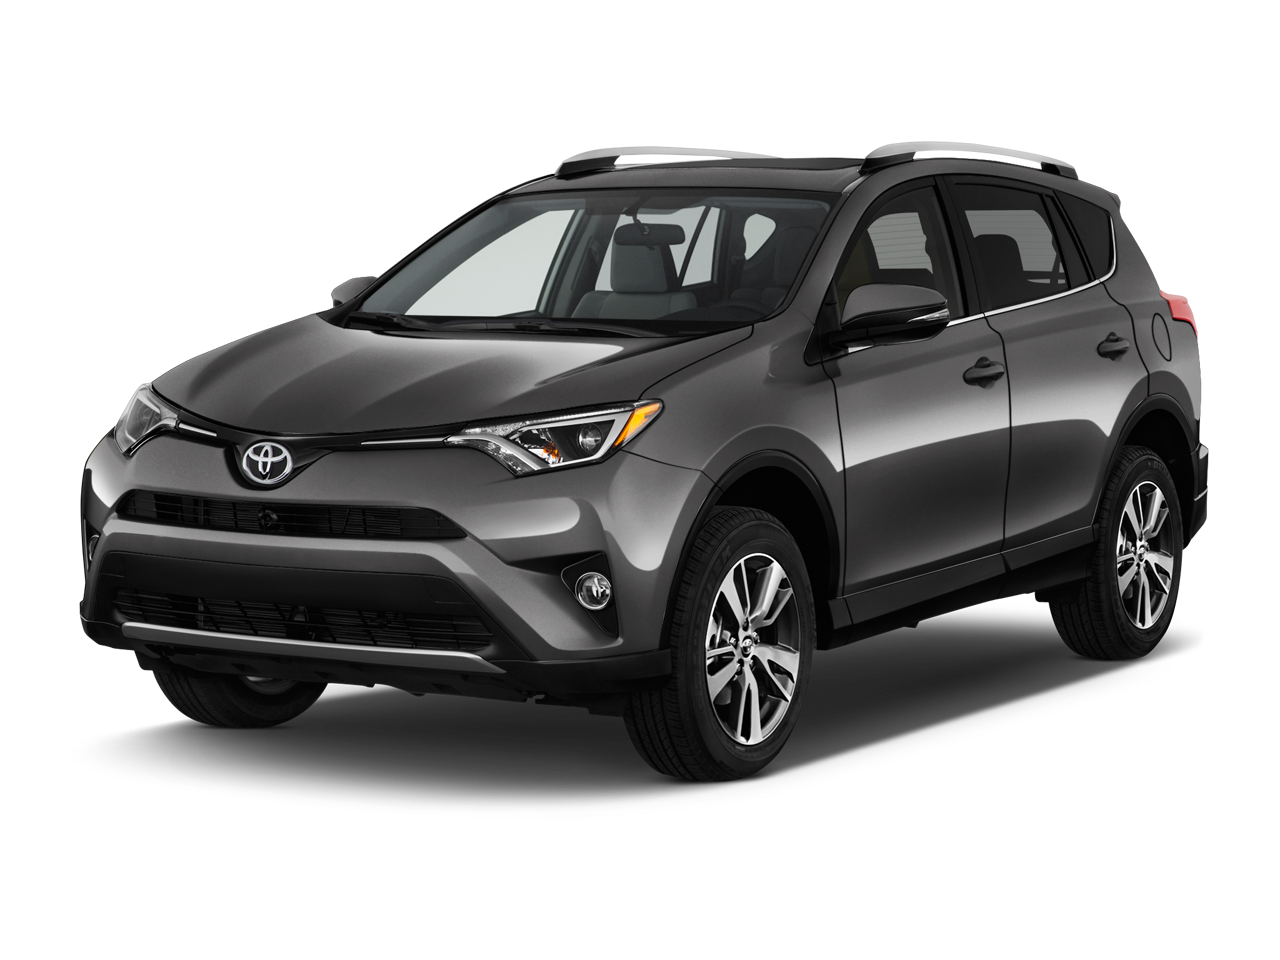 2017 toyota rav4 for sale near greenwich ct toyota of greenwich. Black Bedroom Furniture Sets. Home Design Ideas